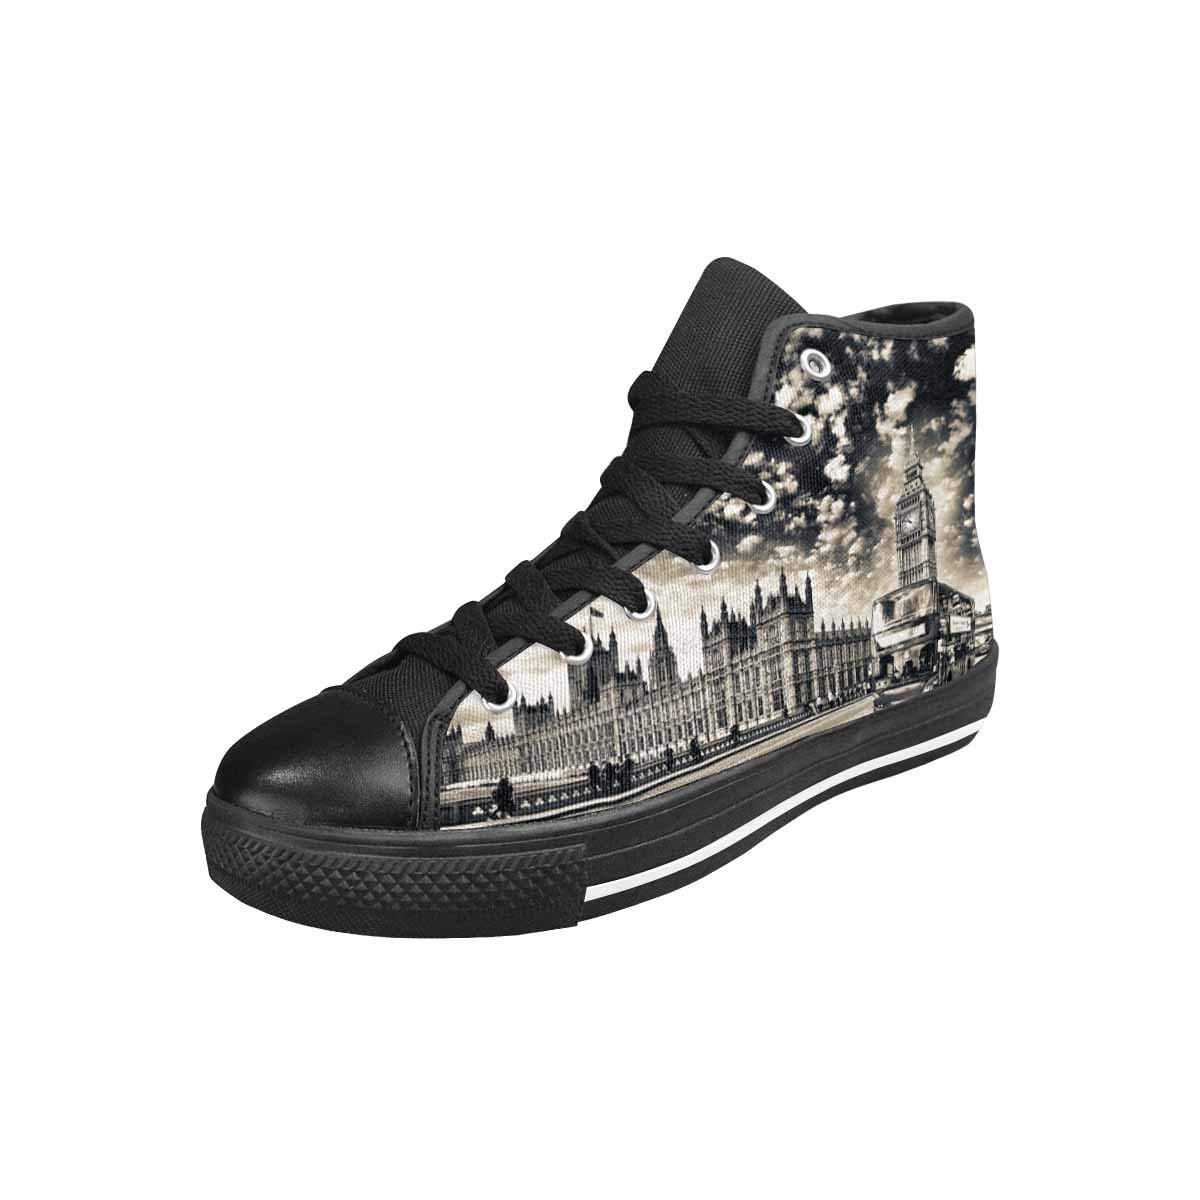 INTERESTPRINT Women's Canvas High Top Sneaker Shoes